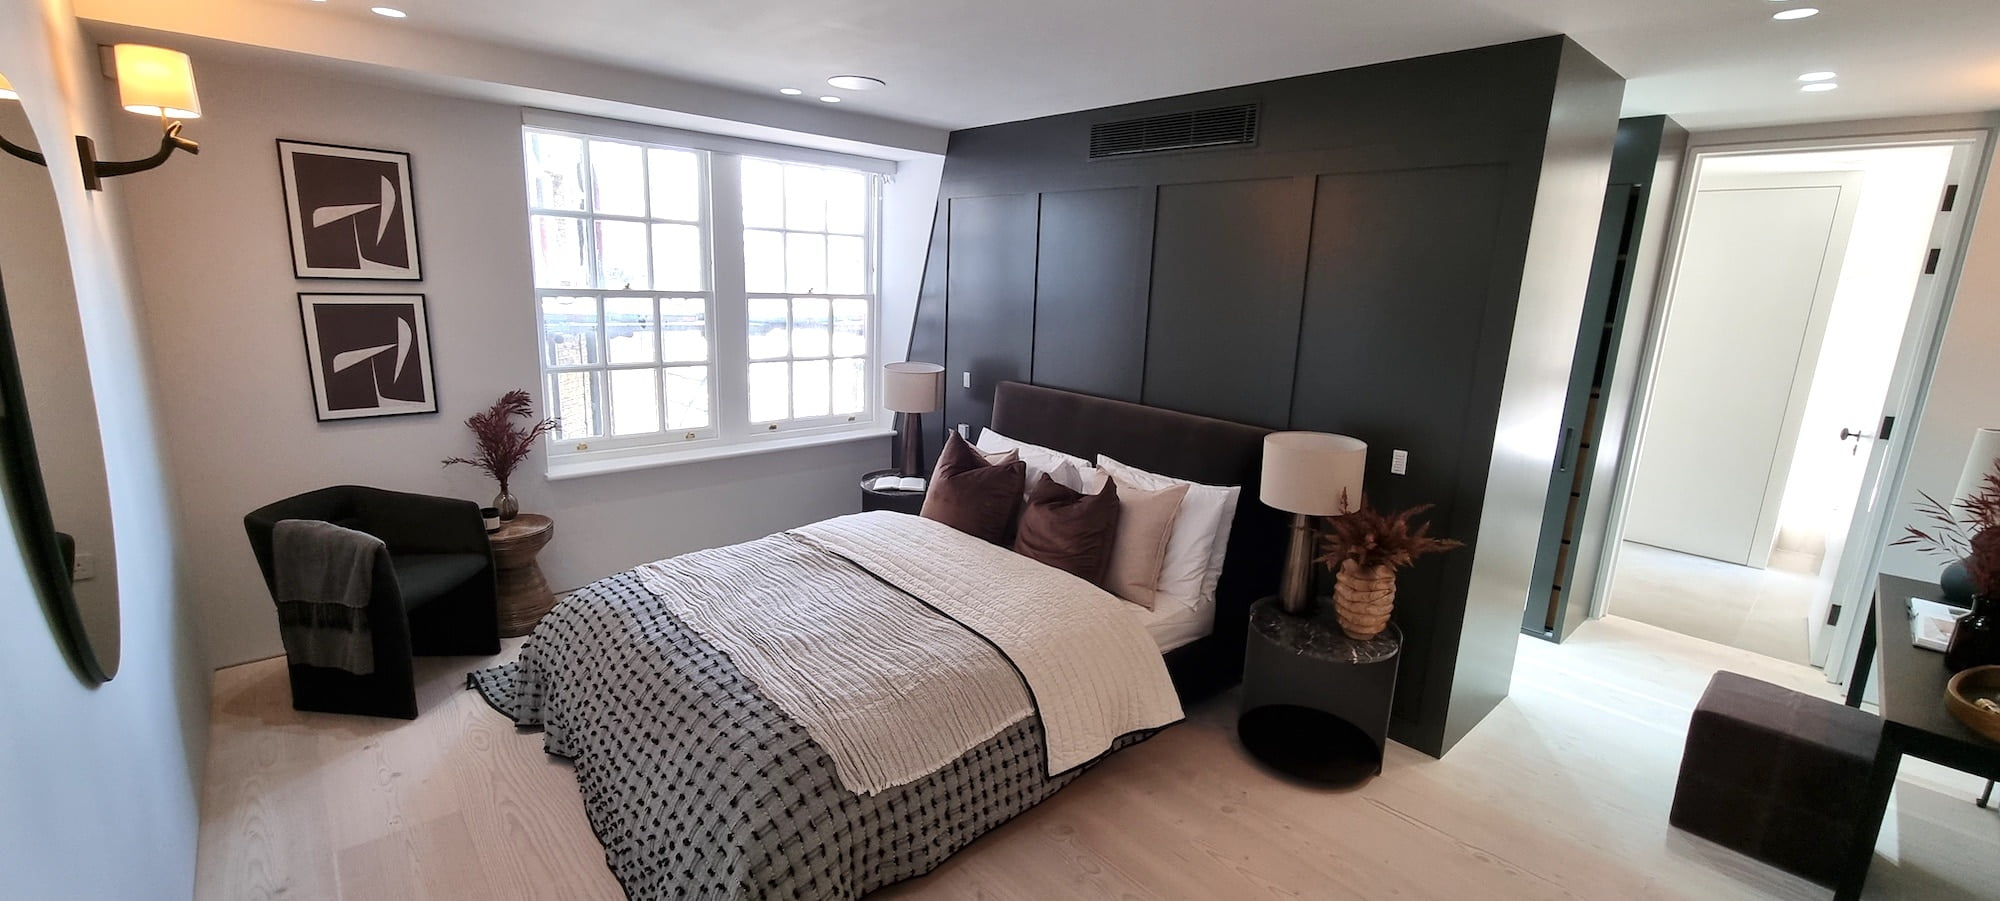 AAC Blogs - Air Conditioning Install – Grosvenor Square, Mayfair